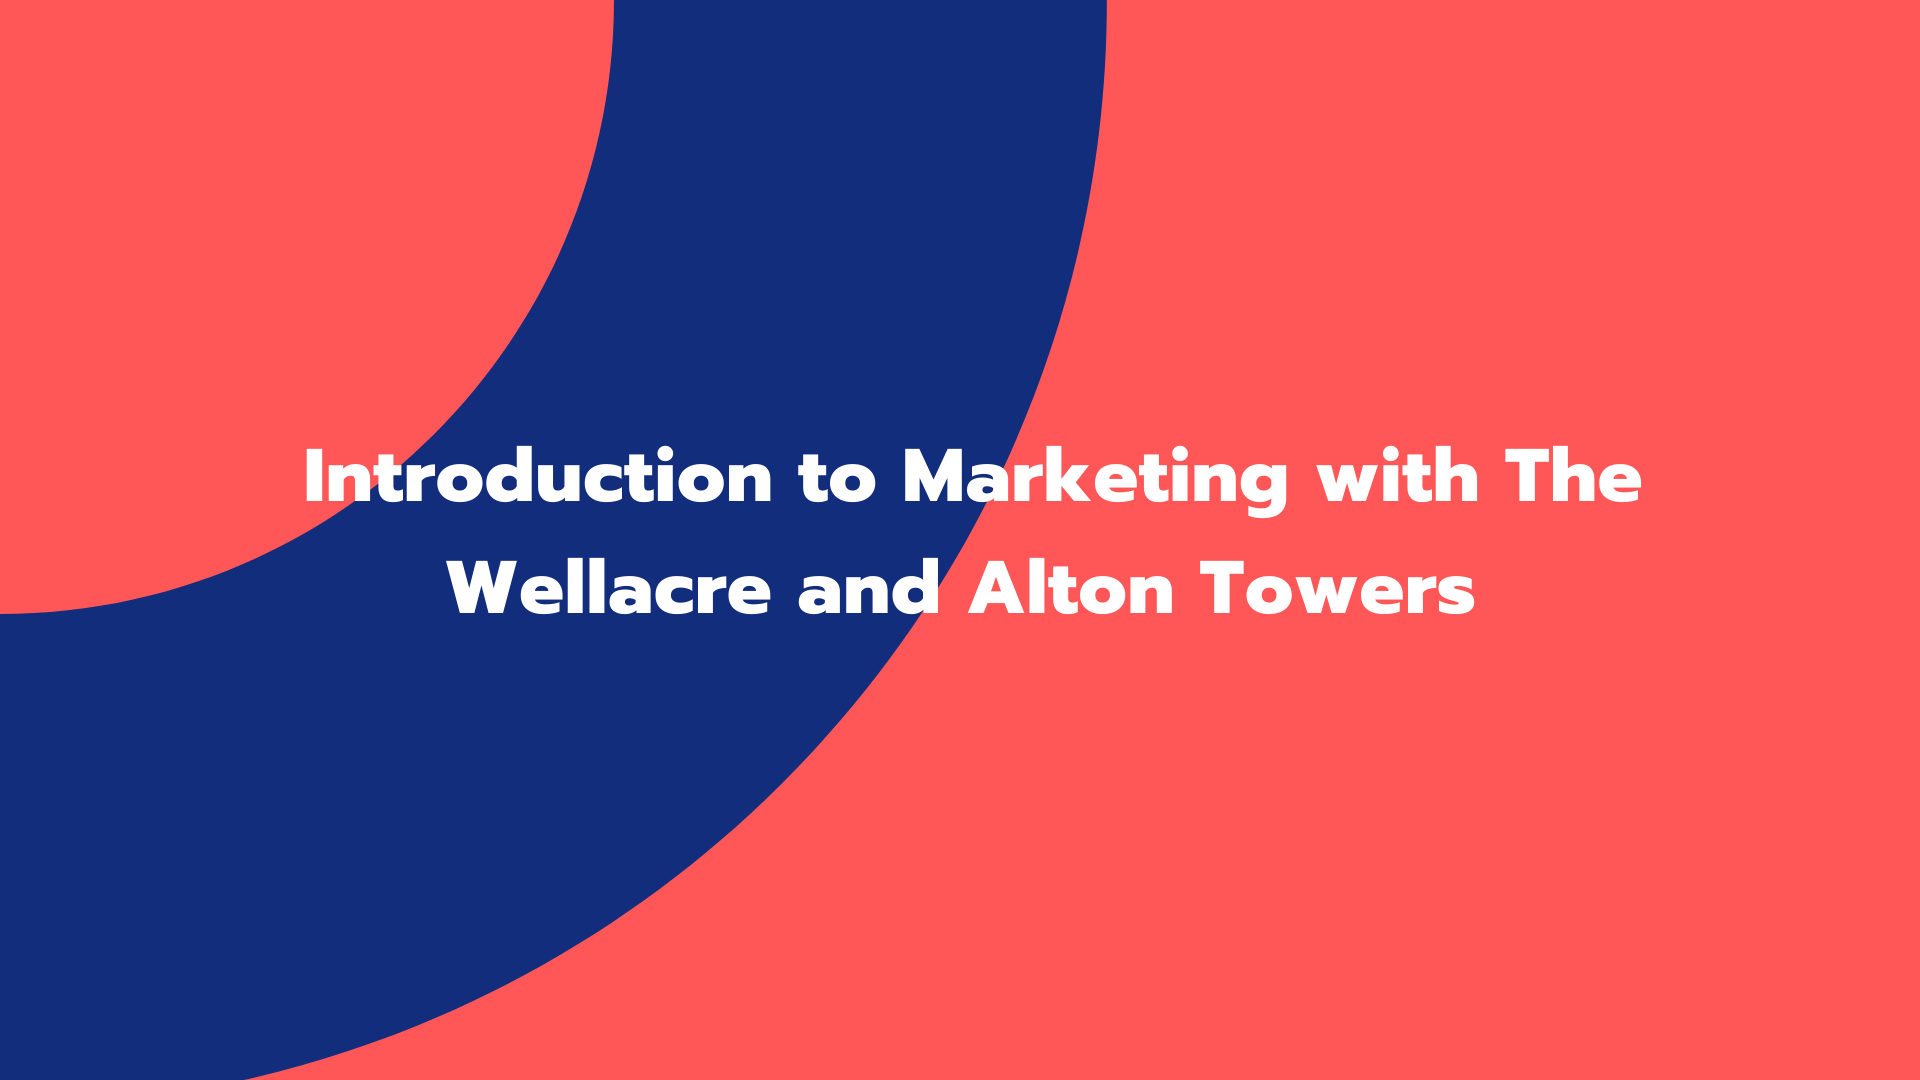 Introduction to Marketing with The Wellacre and Alton Towers